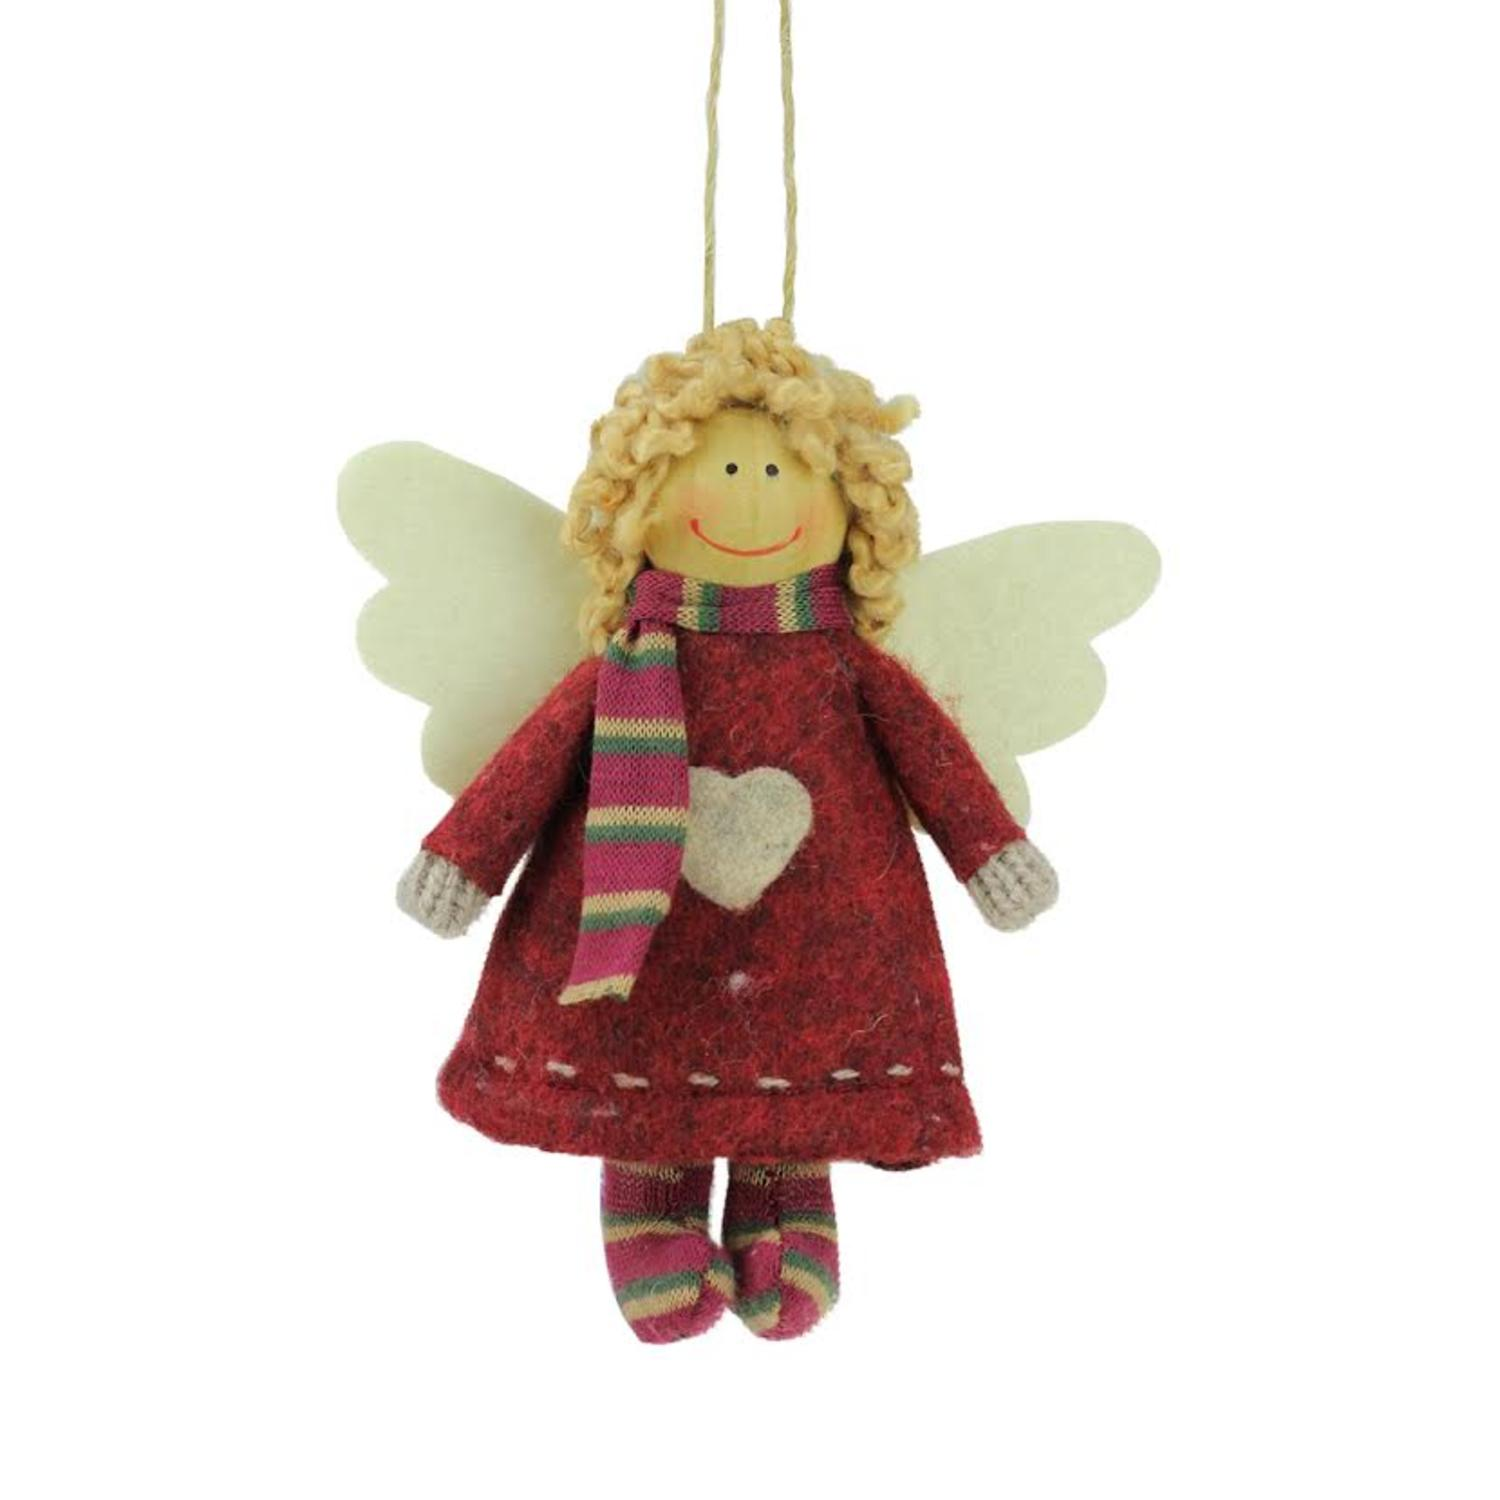 ''4.25''''  Hannah the HOLIDAY Angel Decorative Hanging Christmas Ornament''